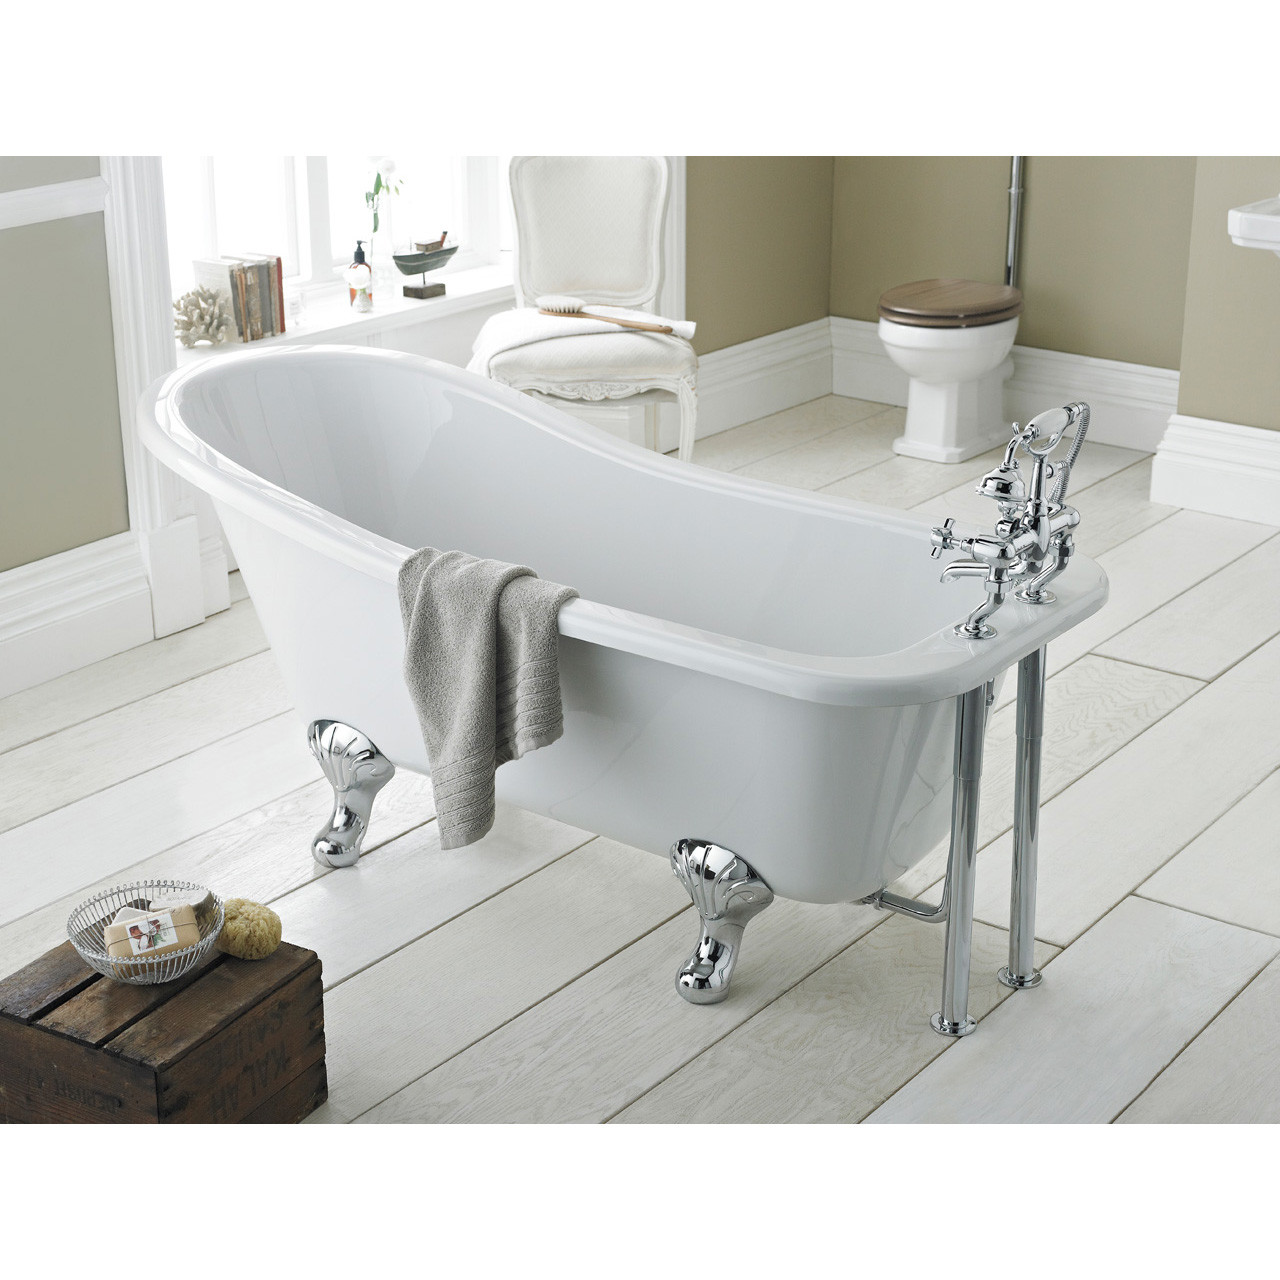 Premier White Kensington 1700 Single Ended Freestanding Bath with Deacon Legs - RL1690M1